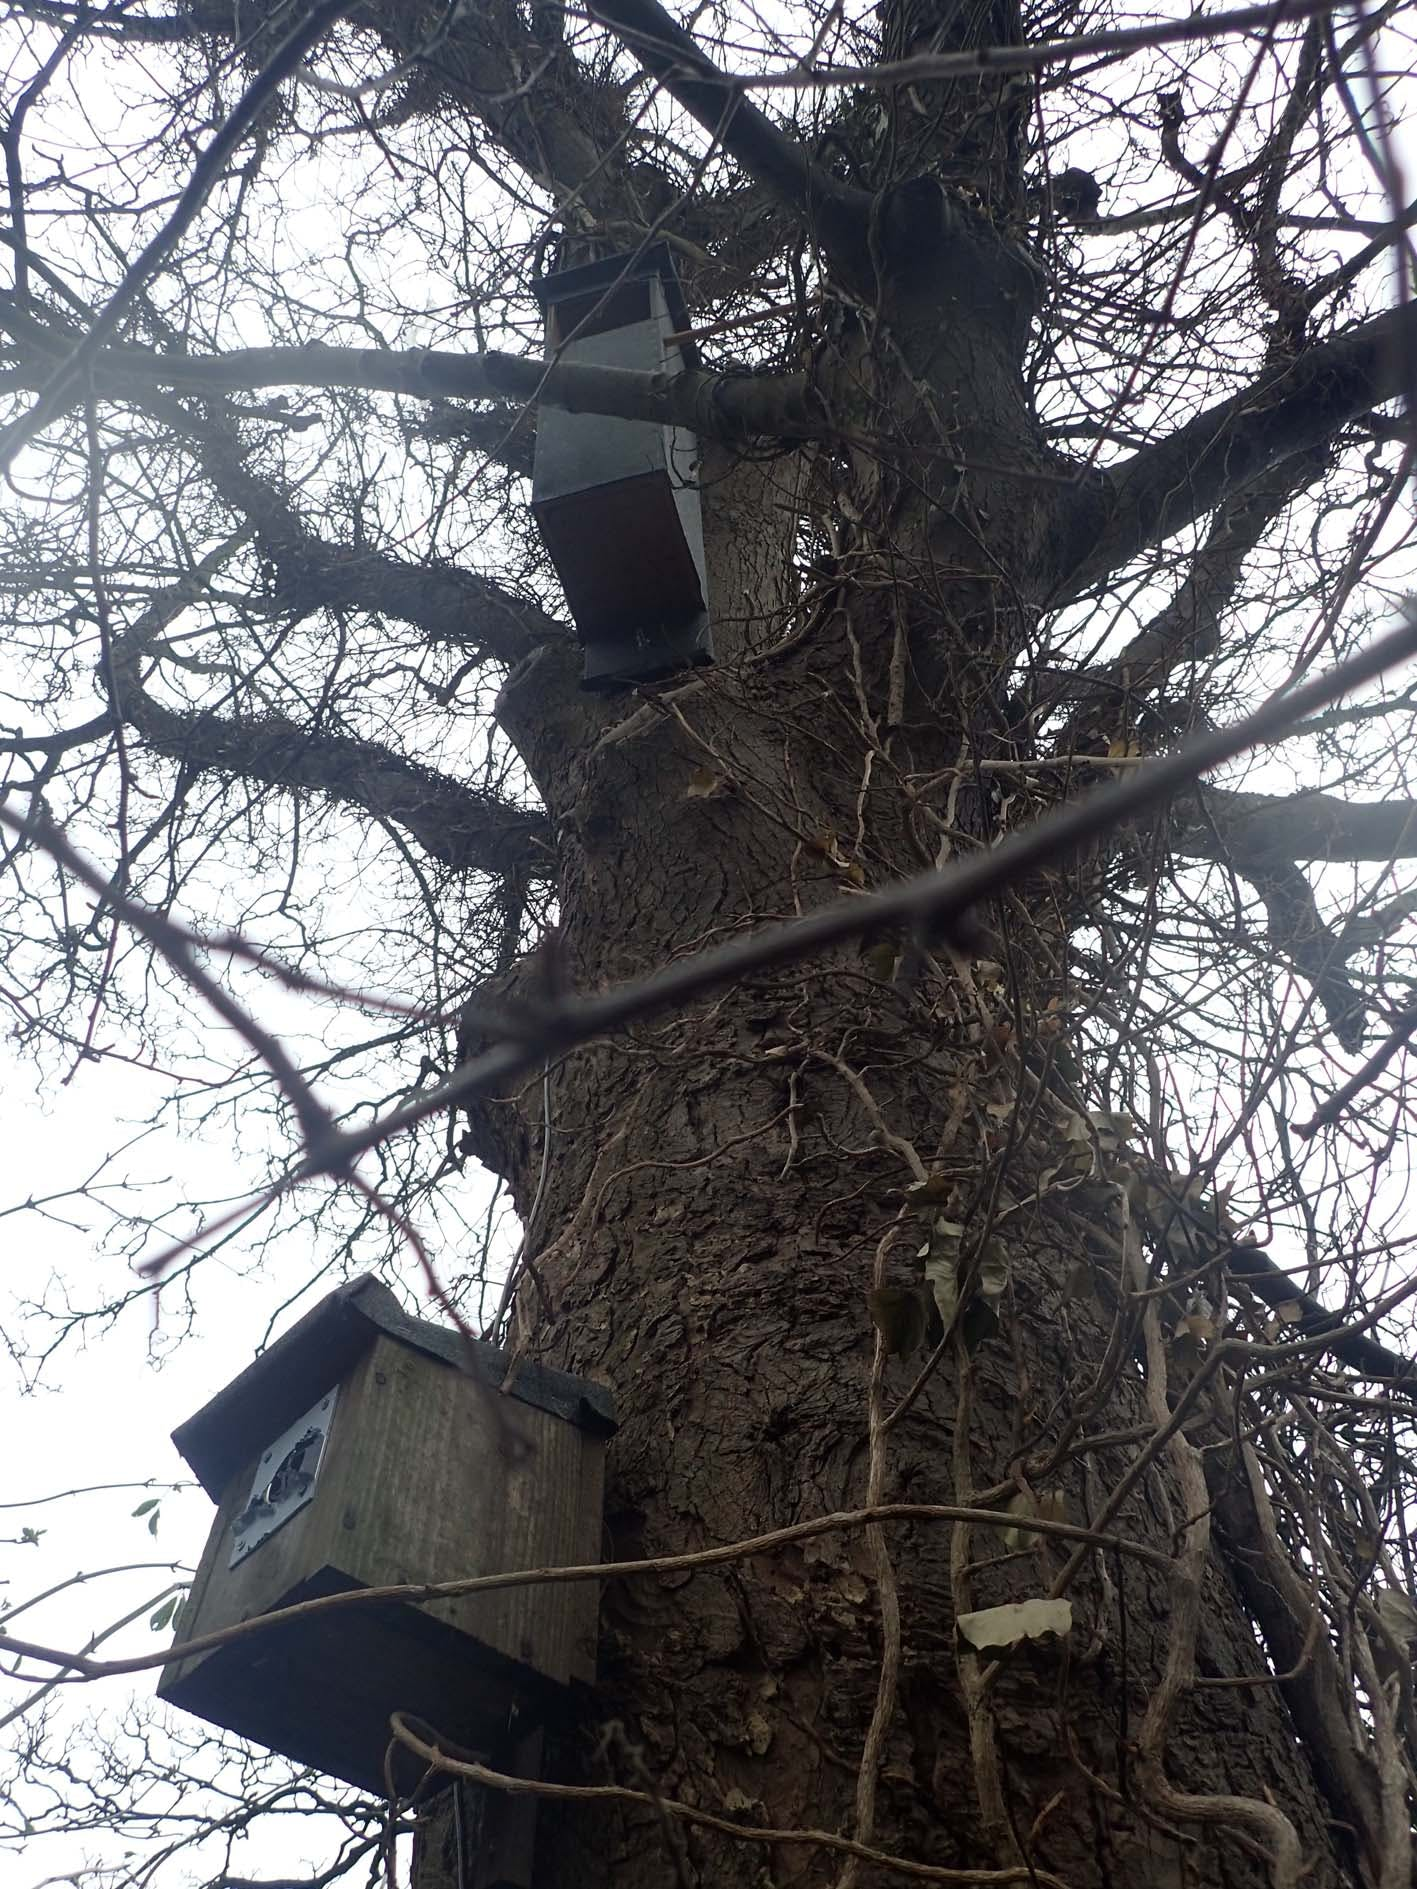 Bird Boxes in Tree